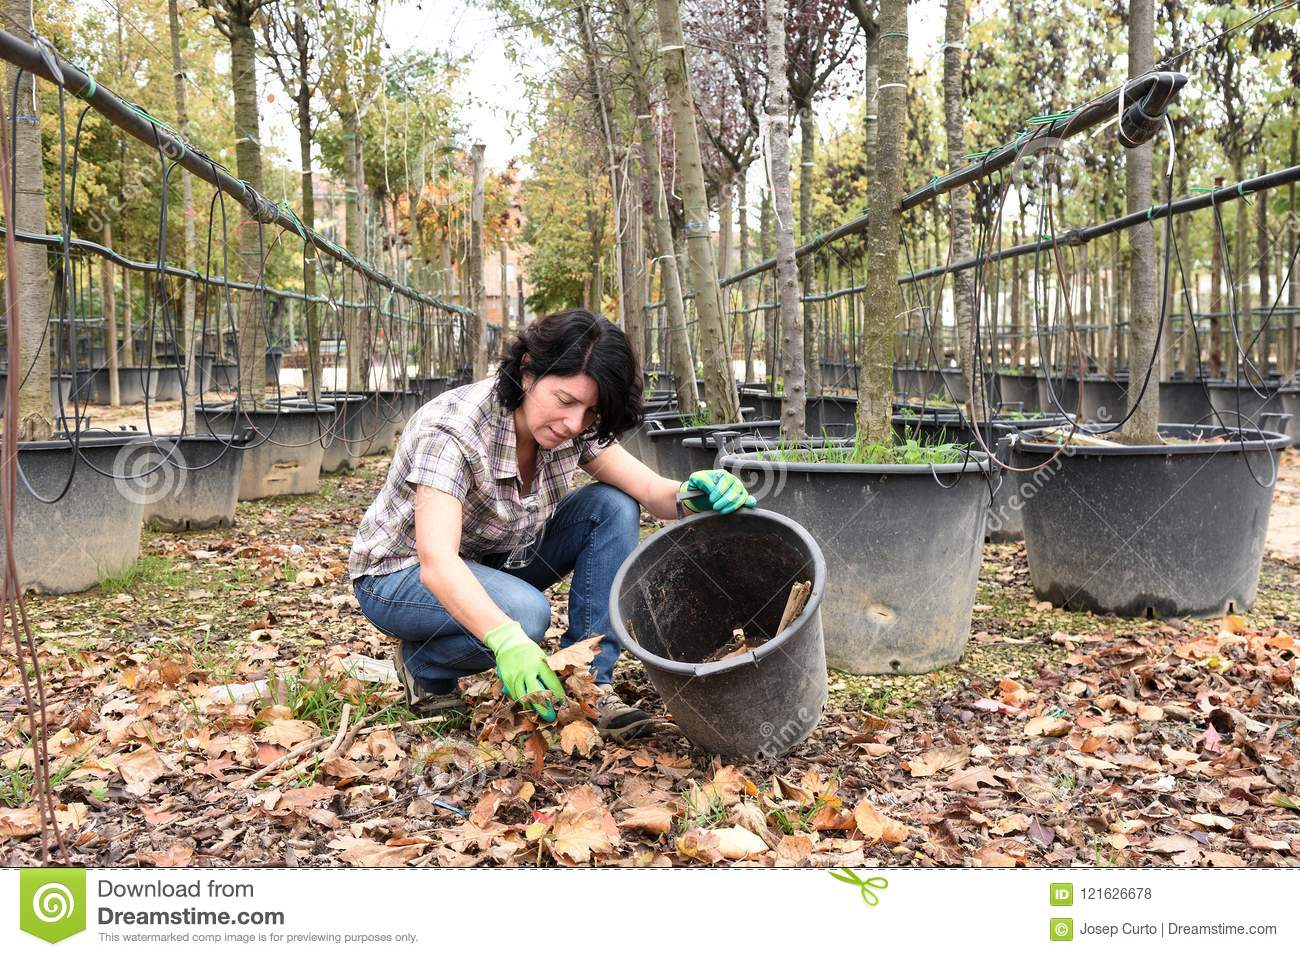 Woman working in the garden center, picking up dry leaves